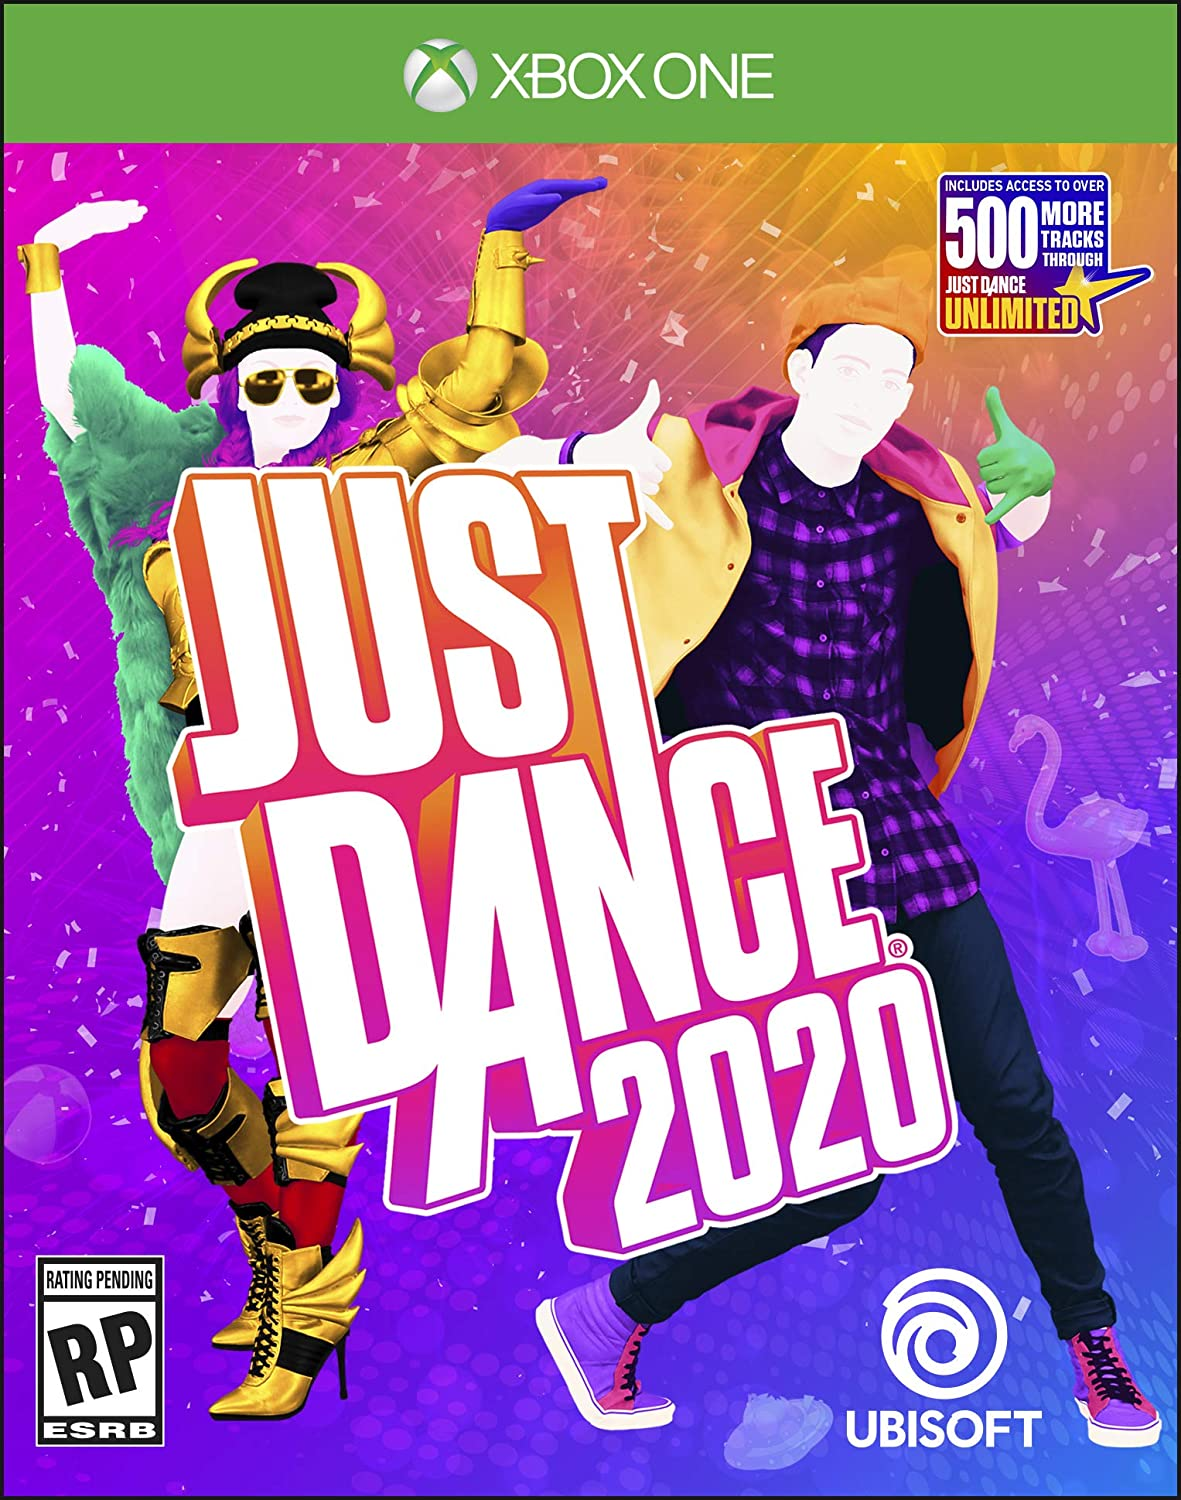 Xbox Games With Gold August 2020.Amazon Com Just Dance 2020 Xbox One Standard Edition